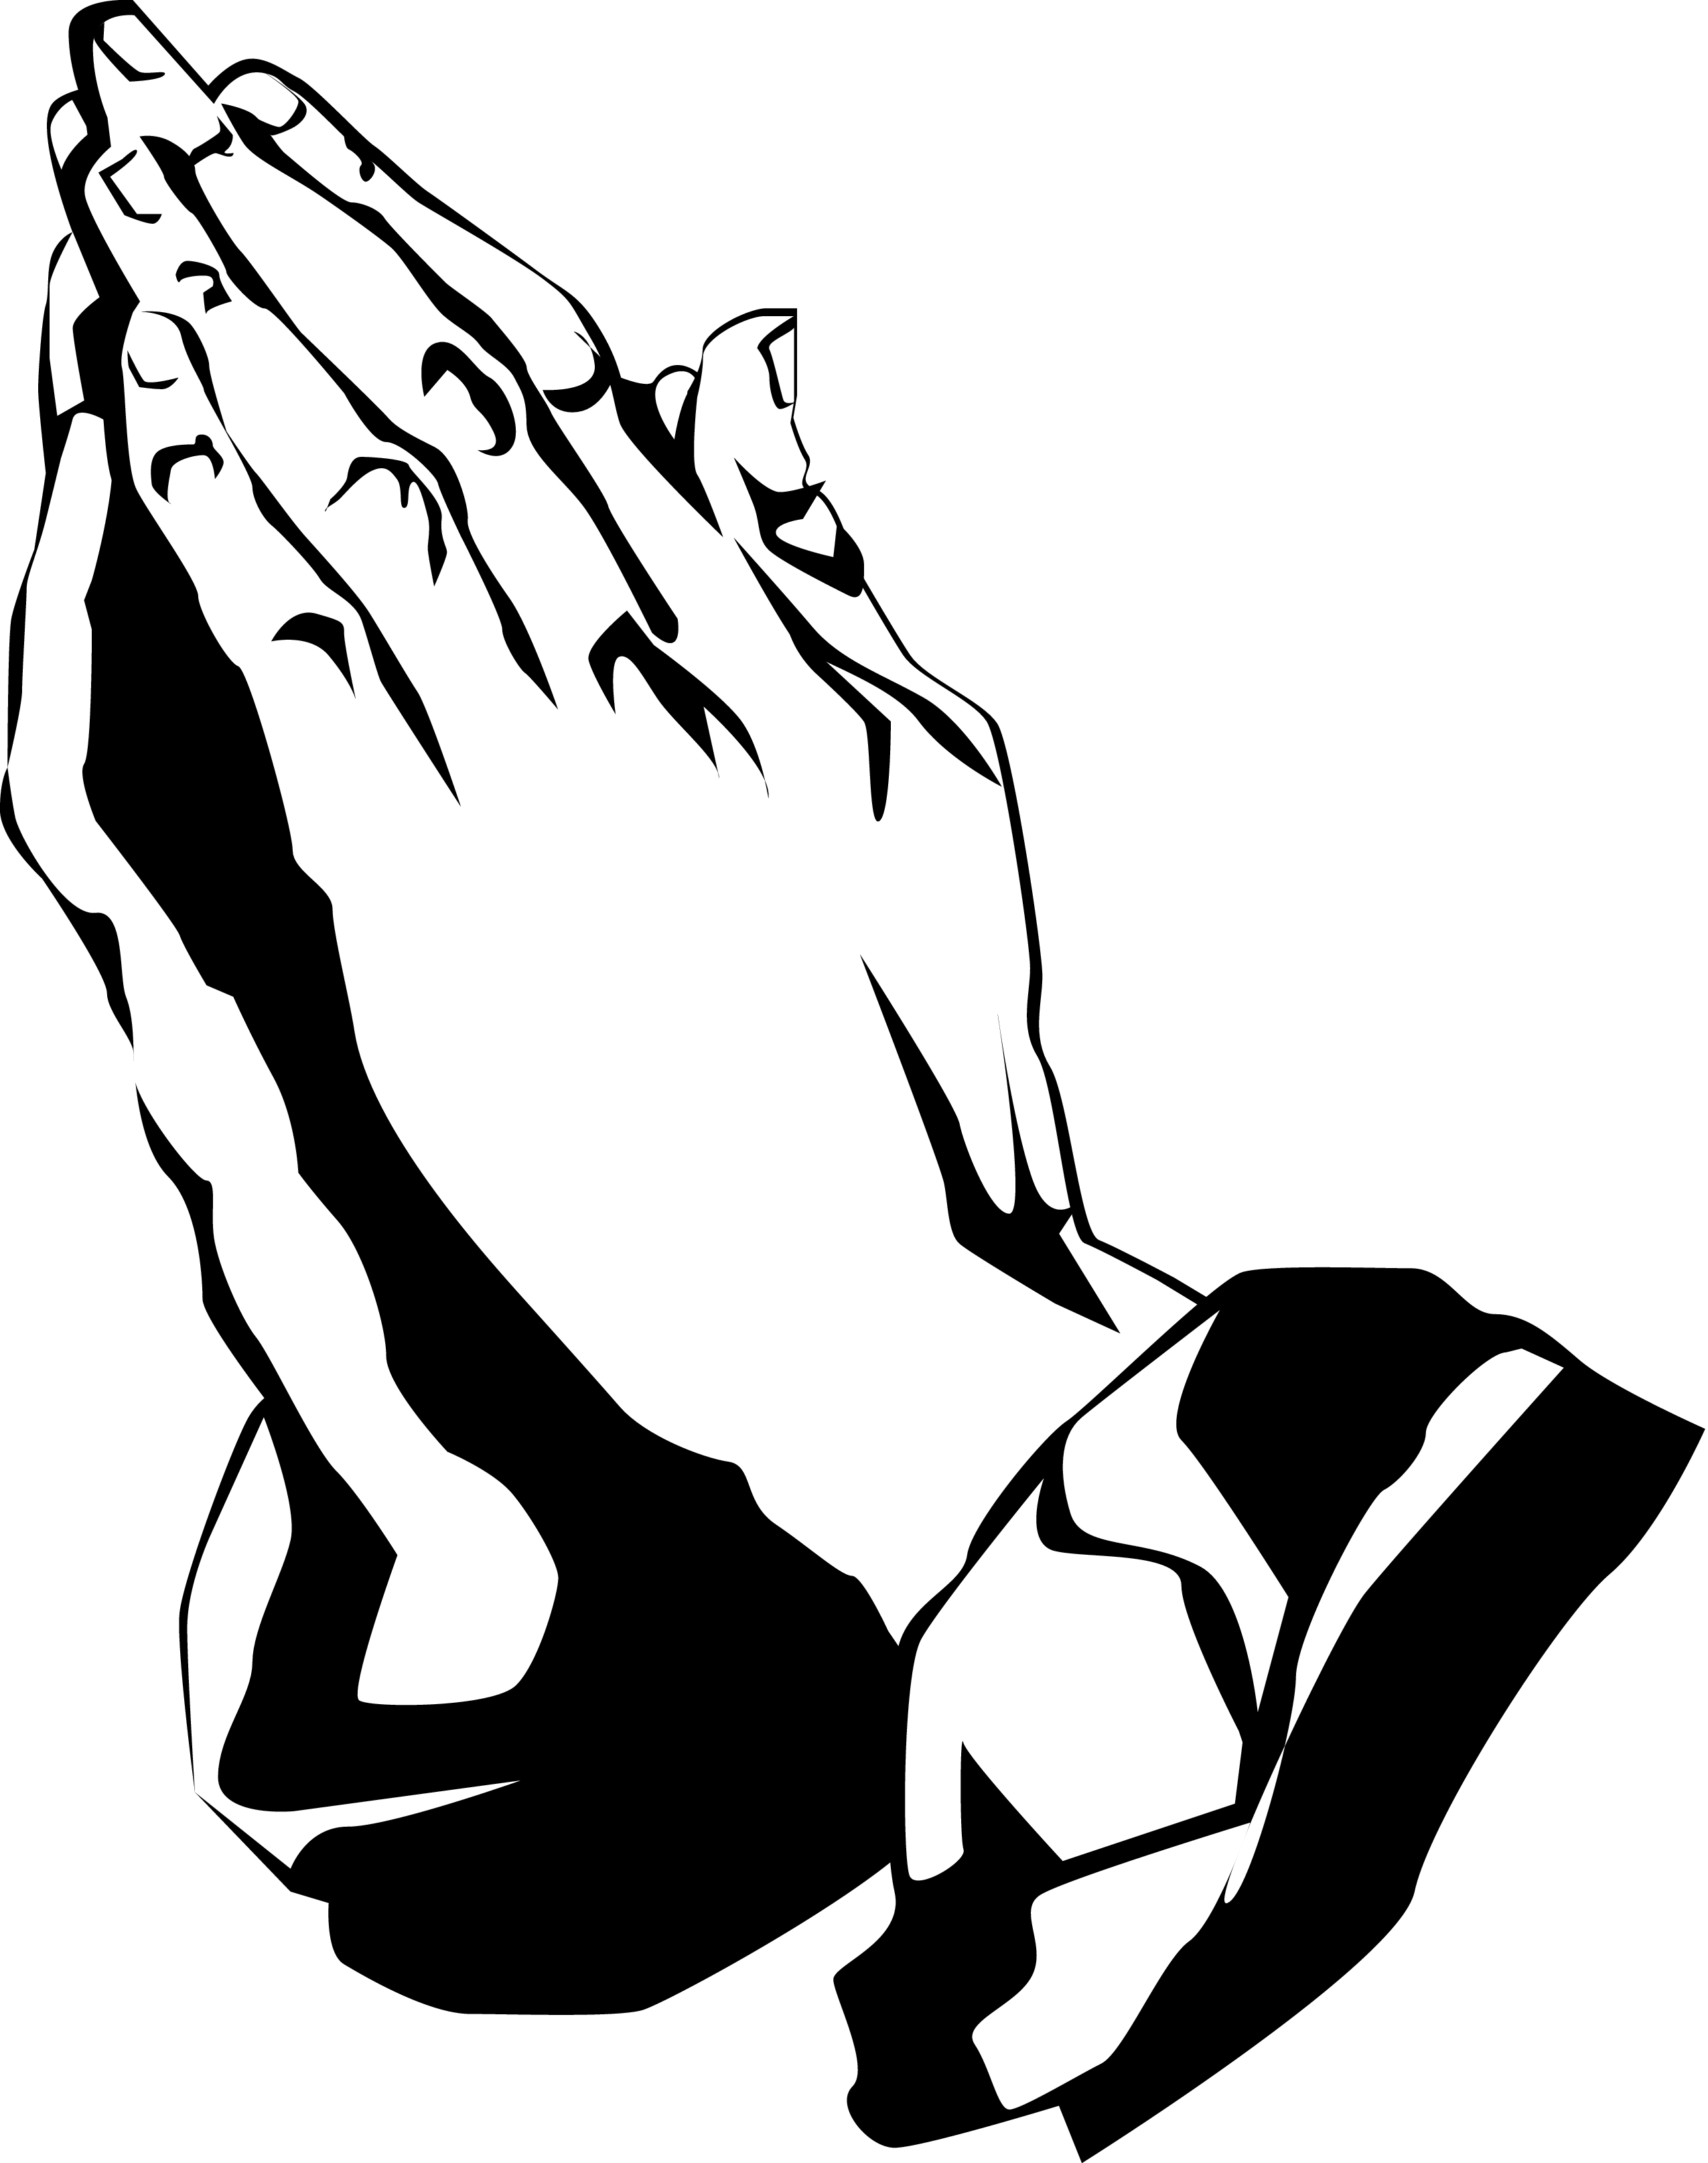 Free Begging Hands Cliparts Download Free Clip Art Free